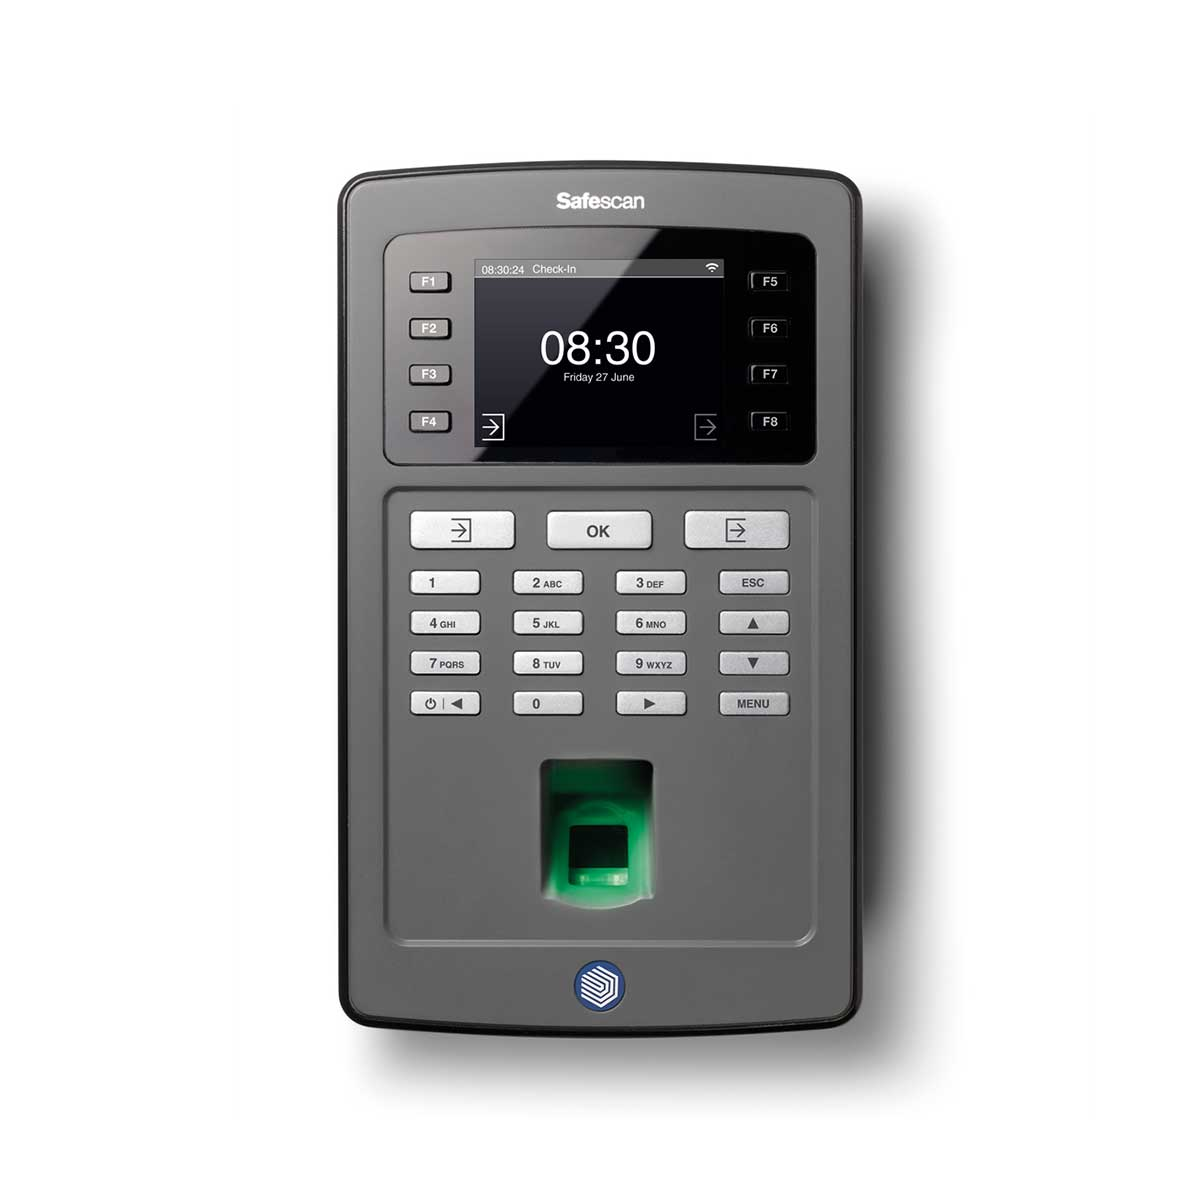 Safescan TA-8025 Time Attendance System and Software with Fingerprint Sensor and Wi-Fi - Black